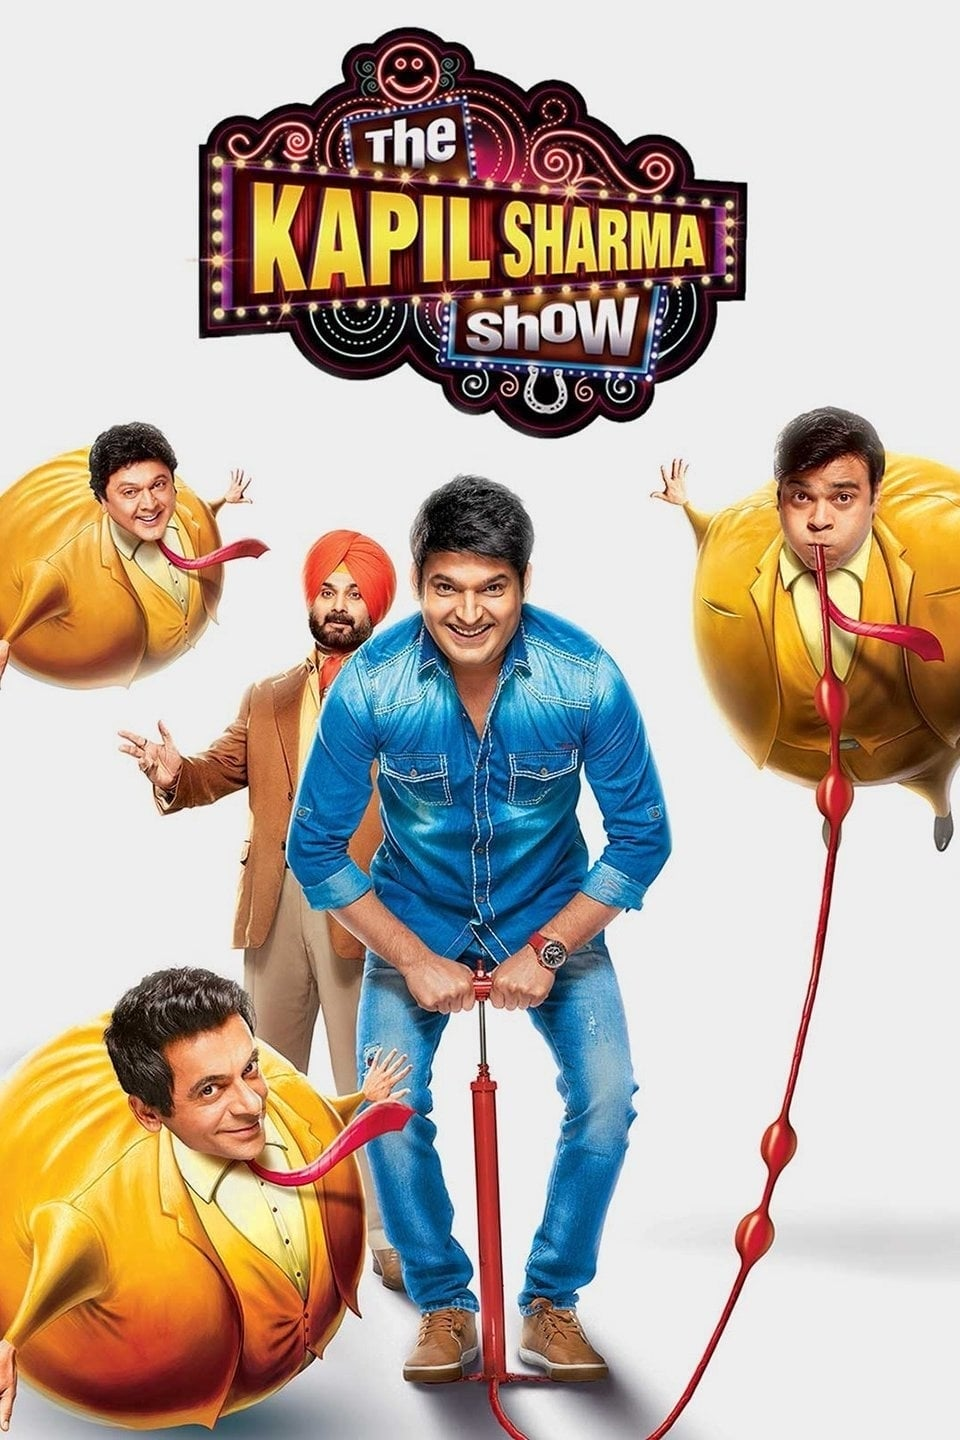 The Kapil Sharma Show (2019) Season 2 [22nd Feb 2020] 576p HDTV | Full Episode